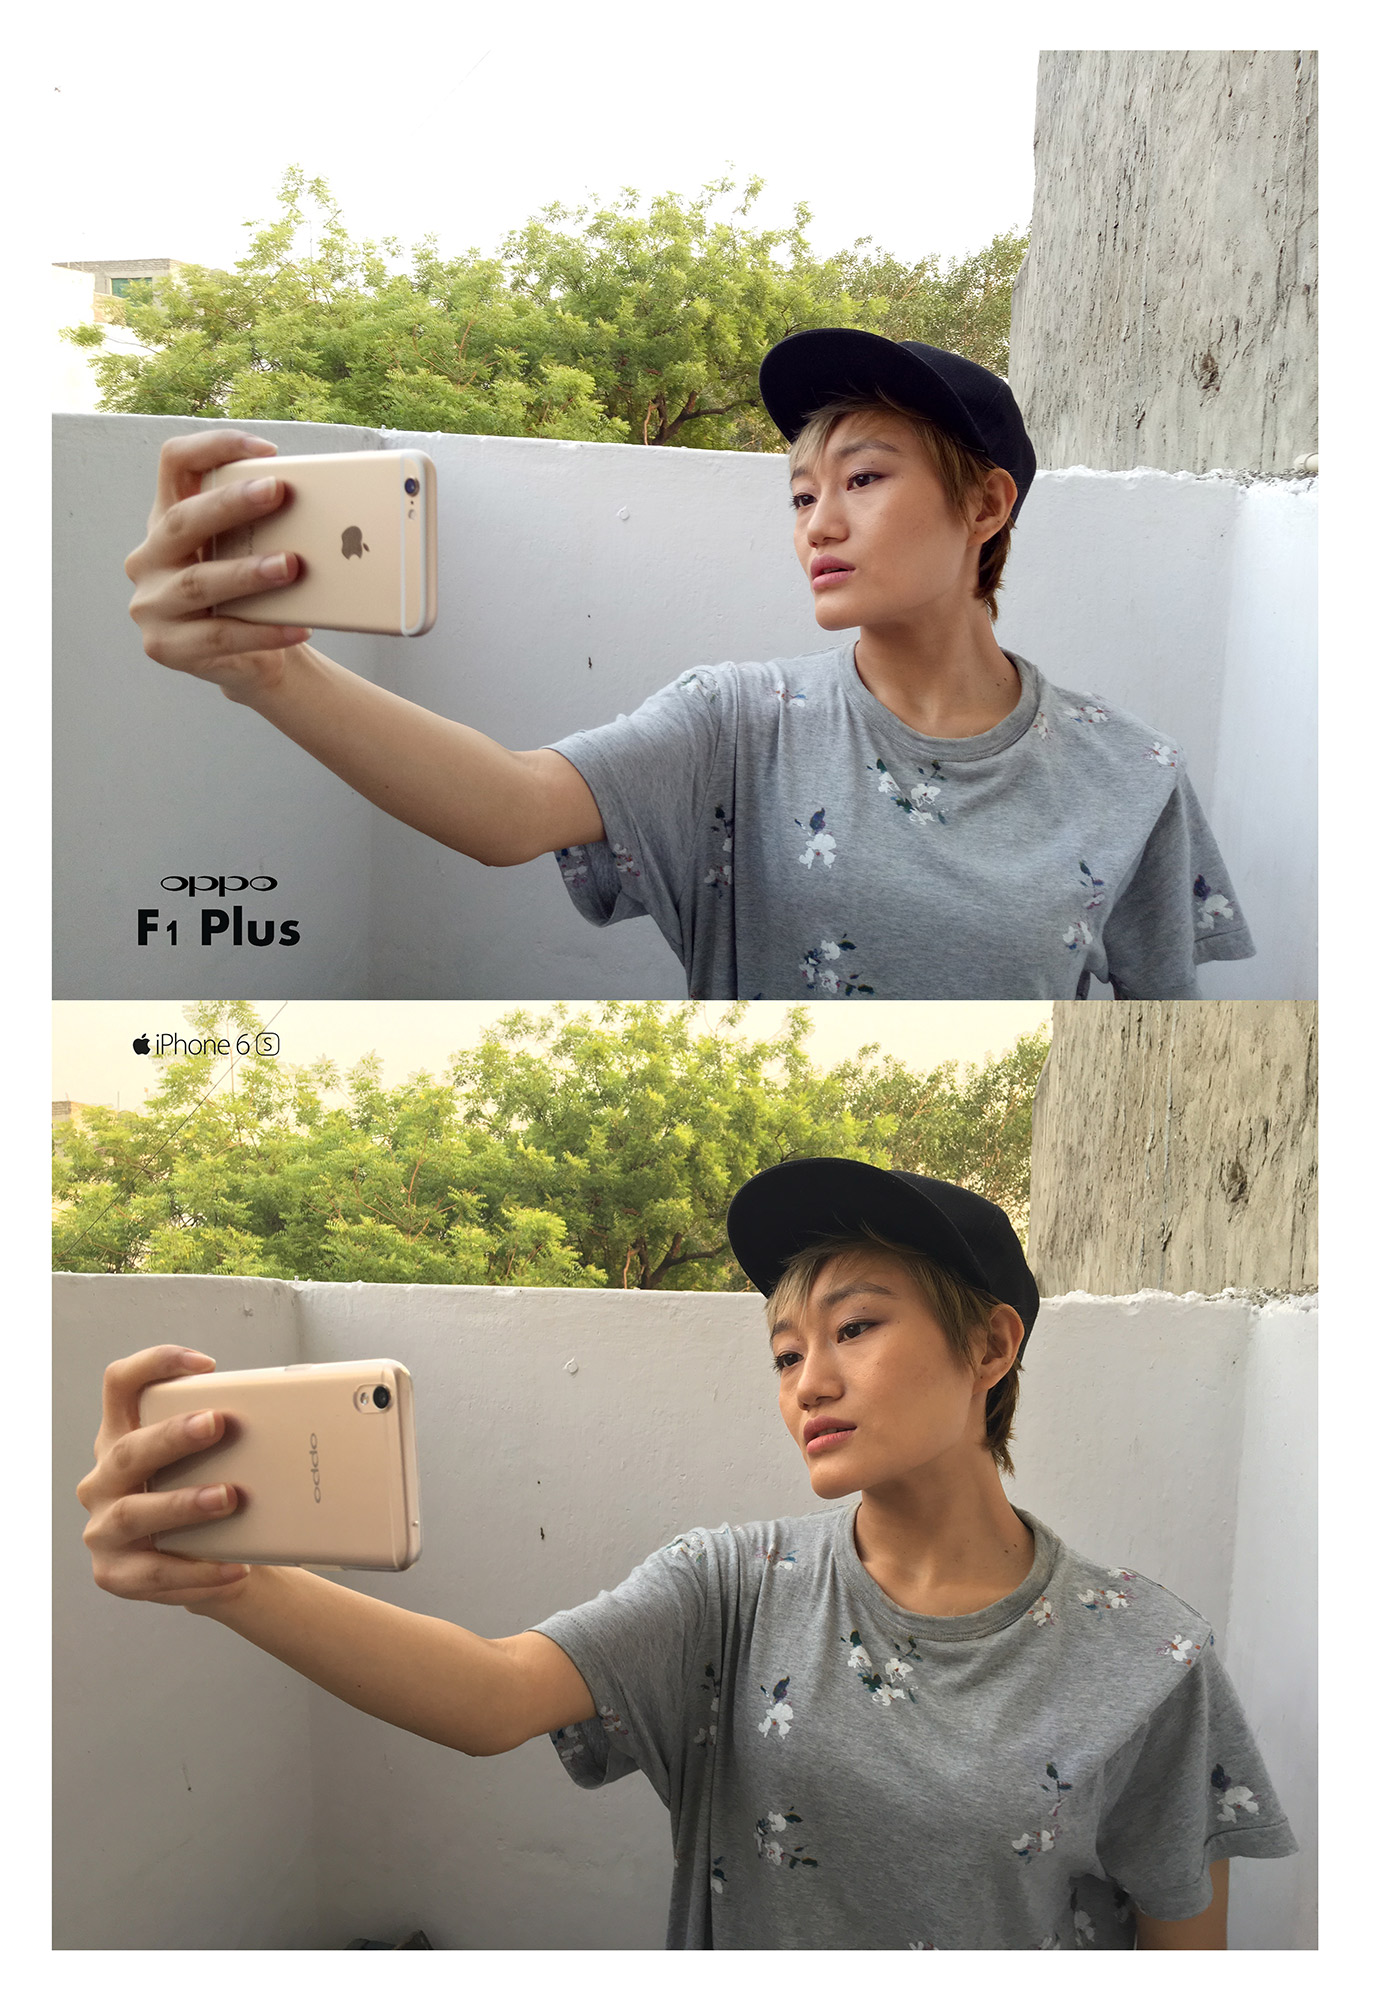 OPPO F1 Plus Vs iPhone 6s-Rear-Camera-Day-Light